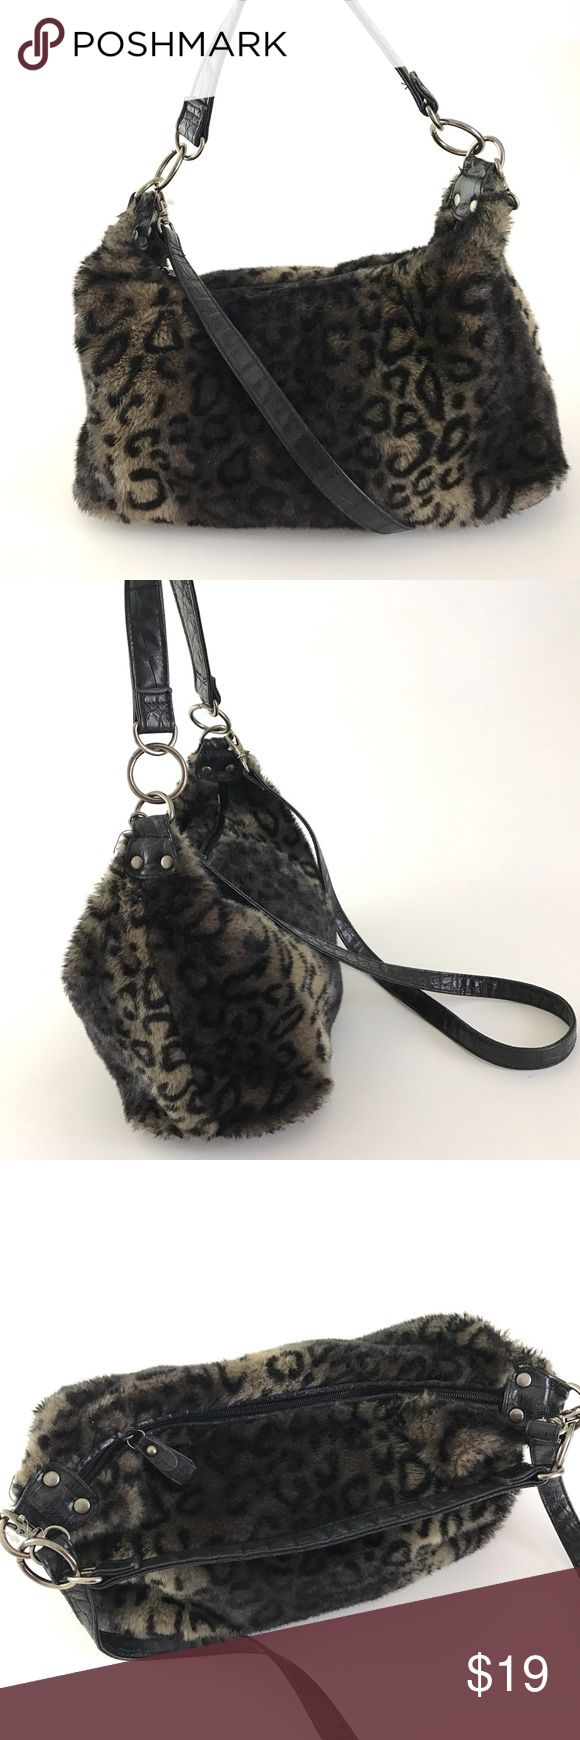 "BUENO Faux Fur Animal Print Shoulder Bag BUENO  Faux Fur Shoulder Bag Animal Pattern Purse Double Strap Handbag   Nice pre Owned Bag, in Good Shape  No Holes or Stains on Outside  No wear on Straps  Has makeup Stains on Inside Bag- Shown in Photos   Inside Bag has 2 Open Pockets   Height:9""  Width:13""  Longest Strap Drop: 25""    Item comes from a pet free/smoke free clean environment  please contact me for any additional questions  I offer combined shipping BUENO Bags Shoulder Bags"